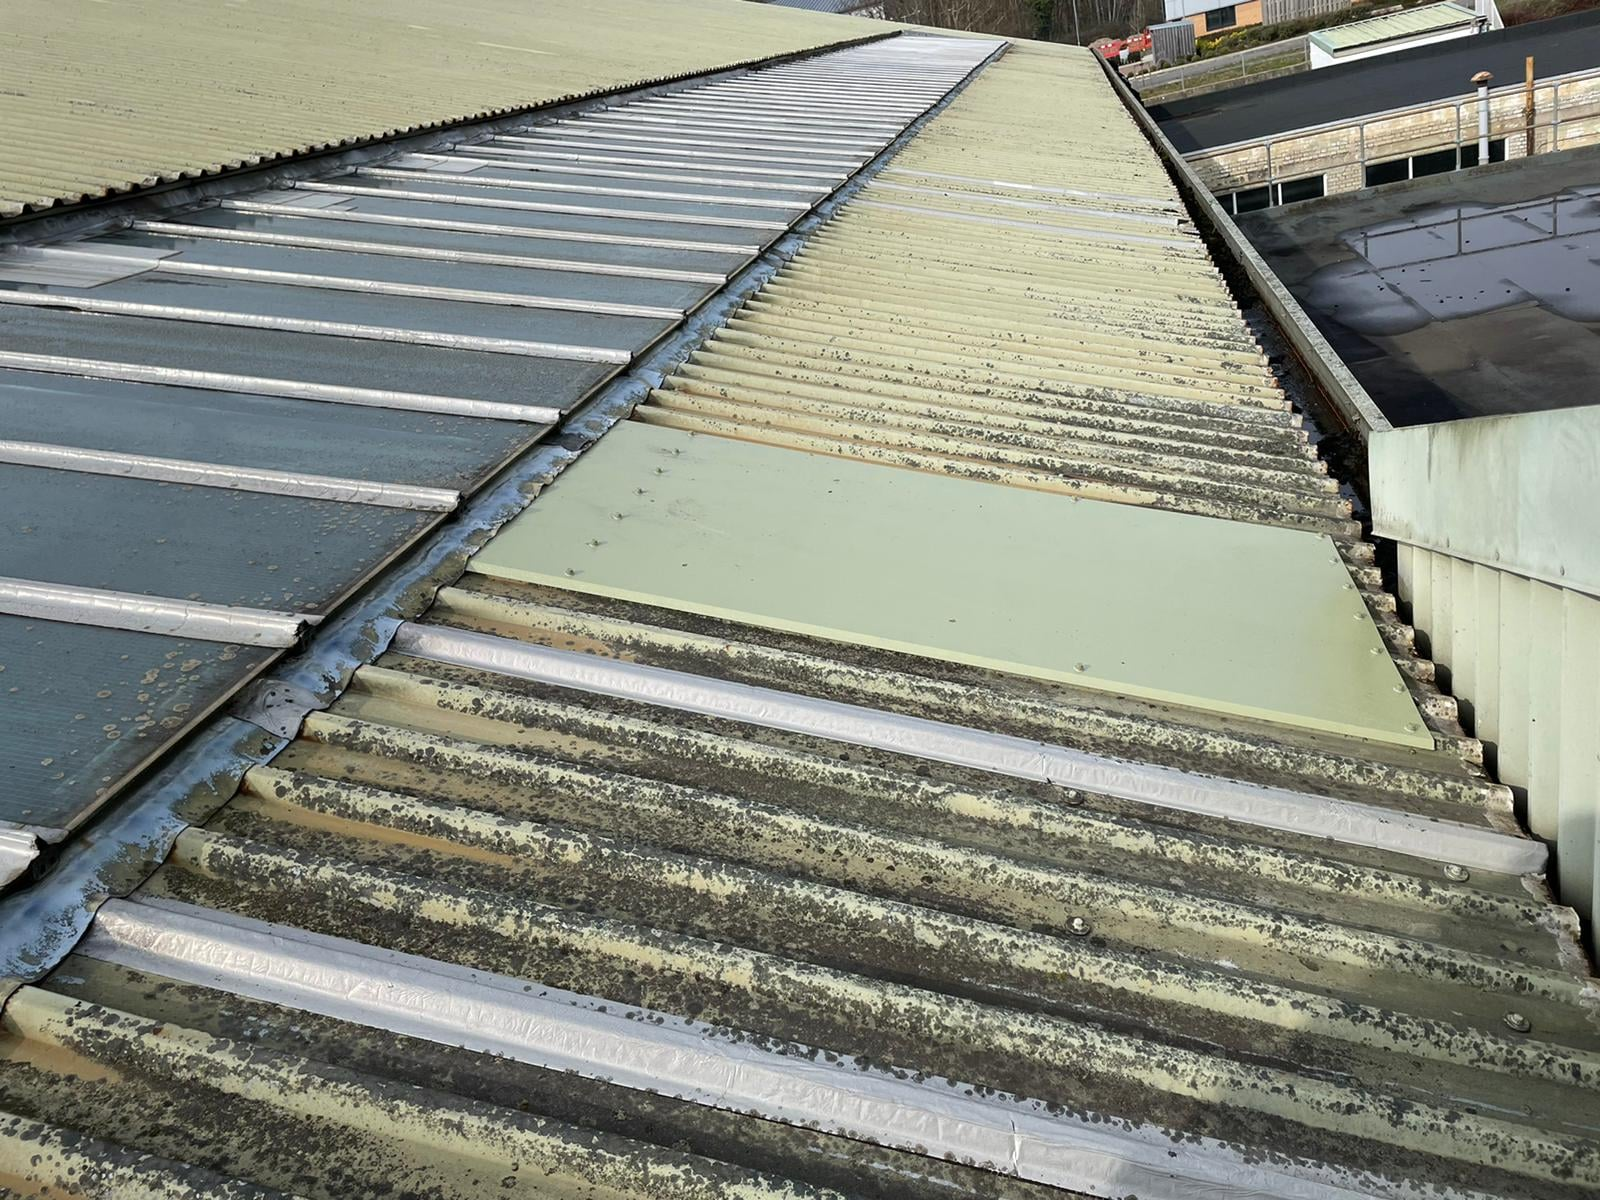 Repairs to a Factory roof in Cranleigh Surrey